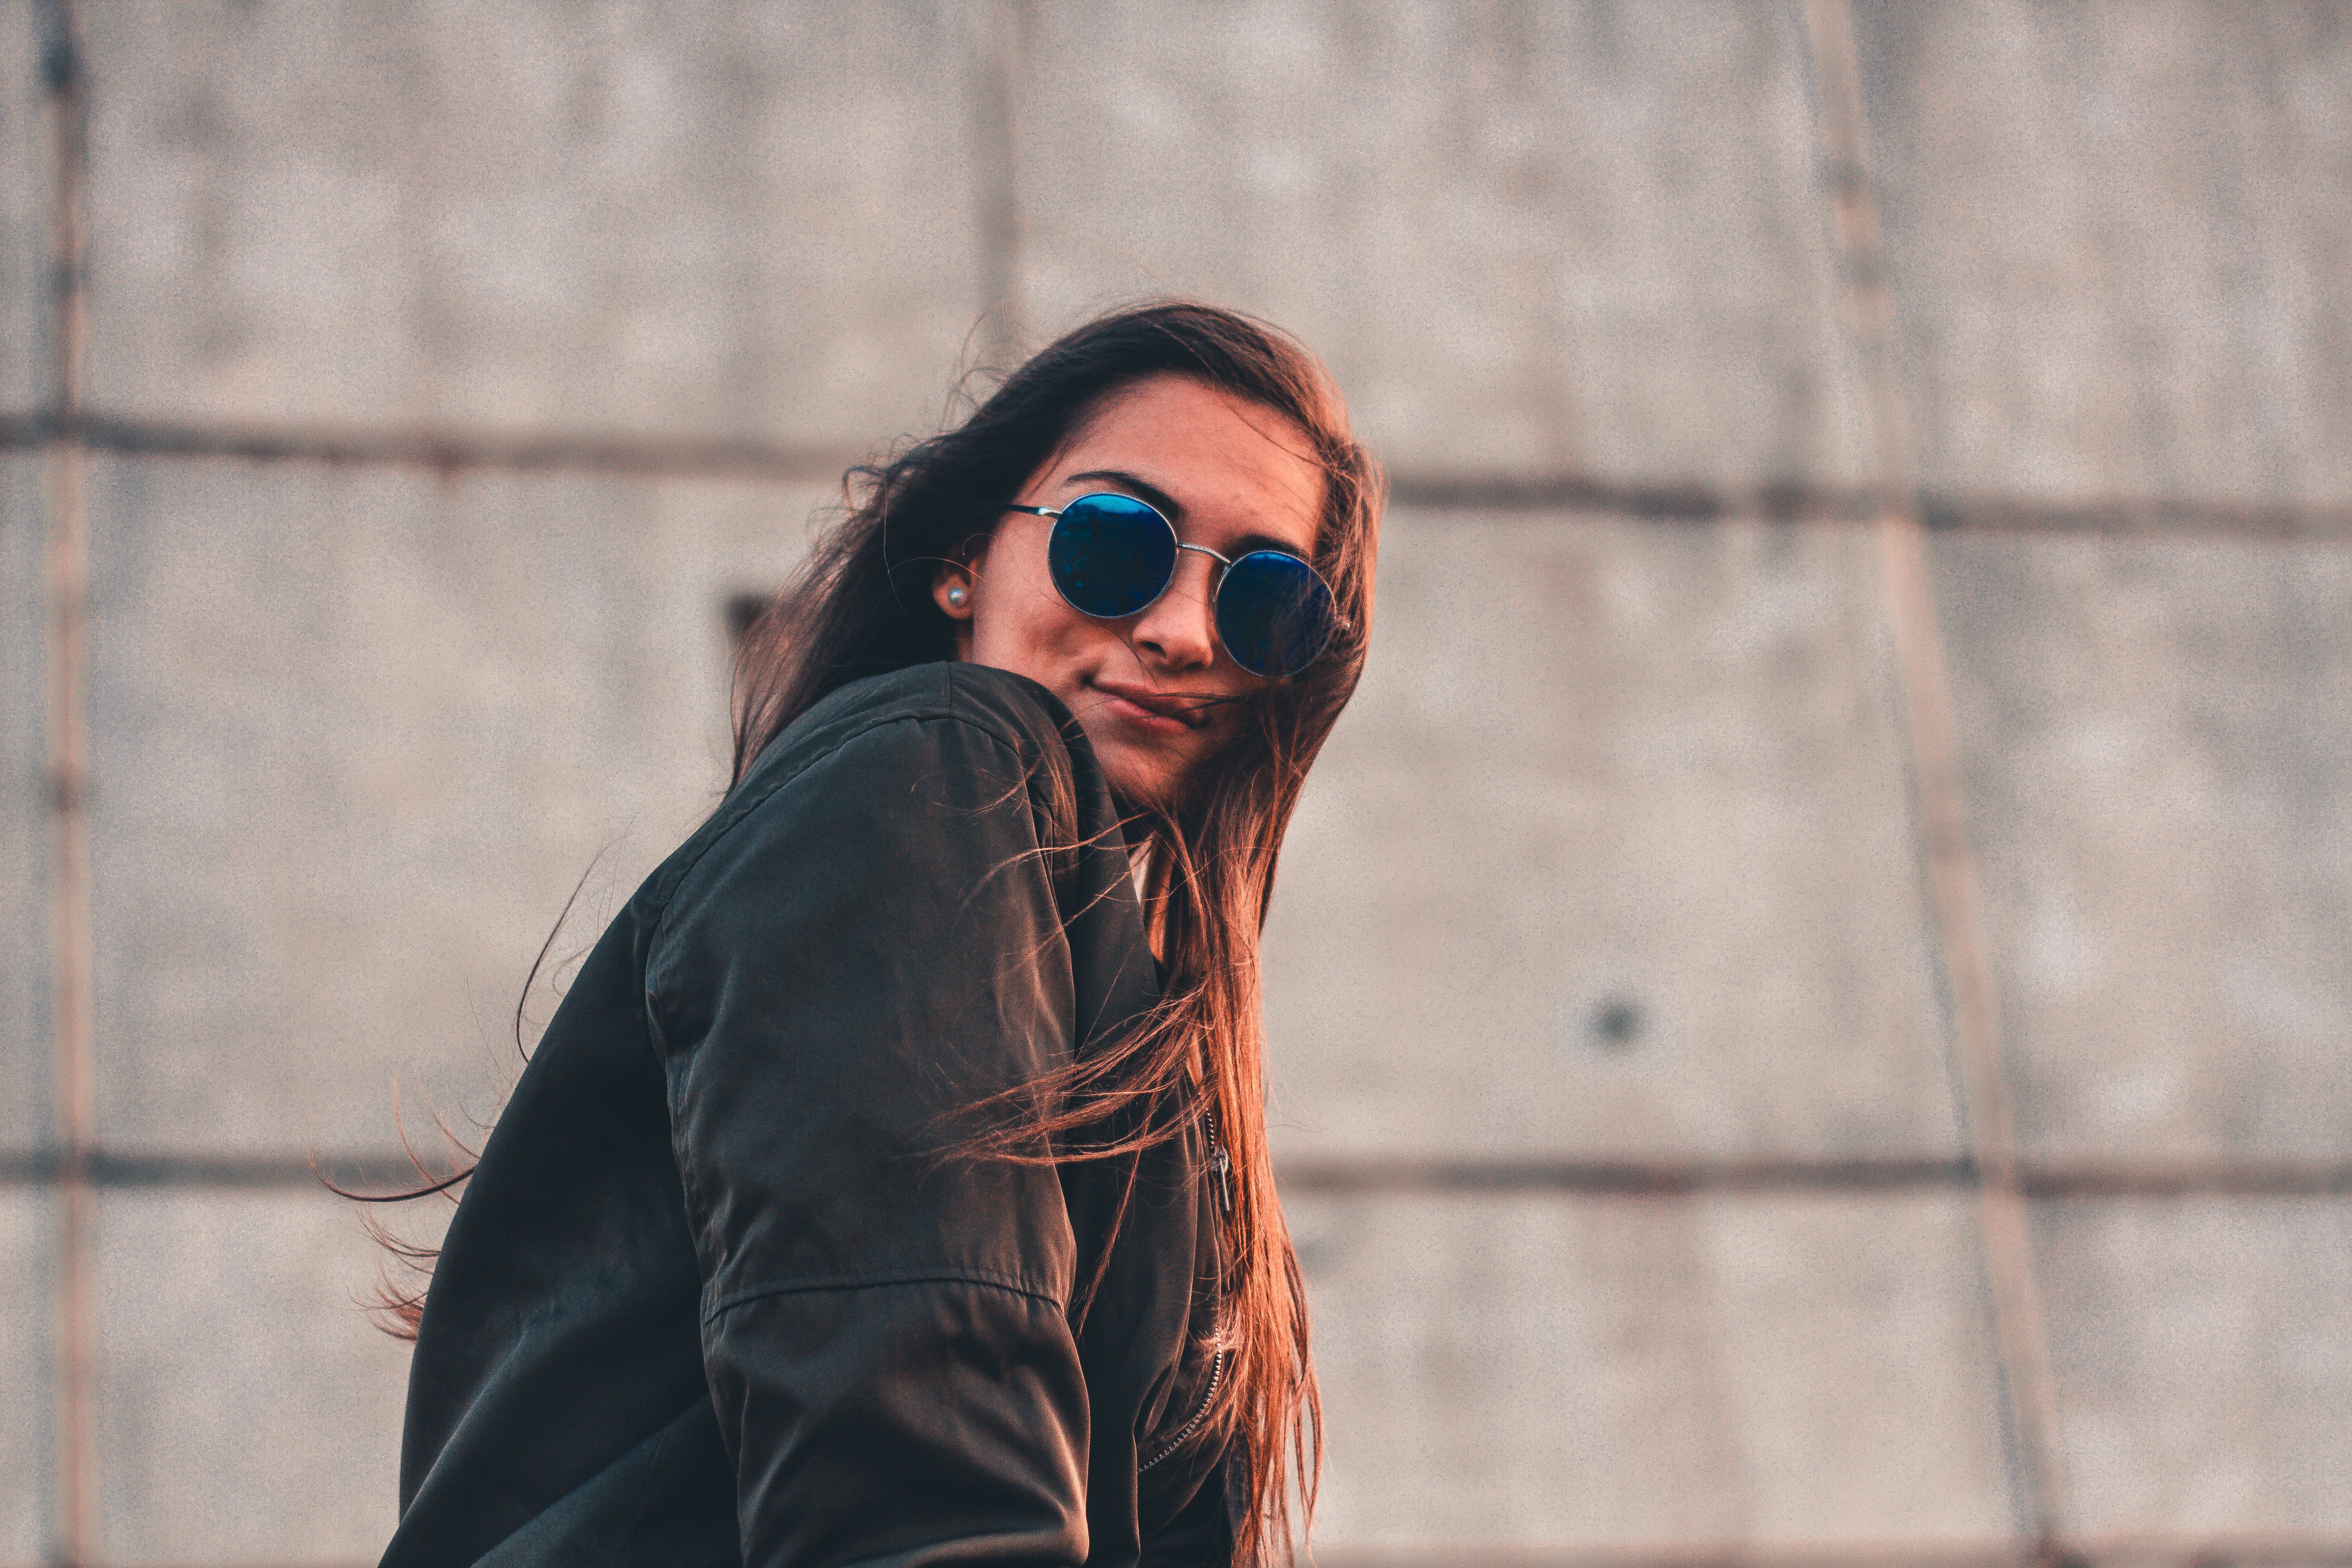 Woman in Black Jacket Wearing Sunglasses